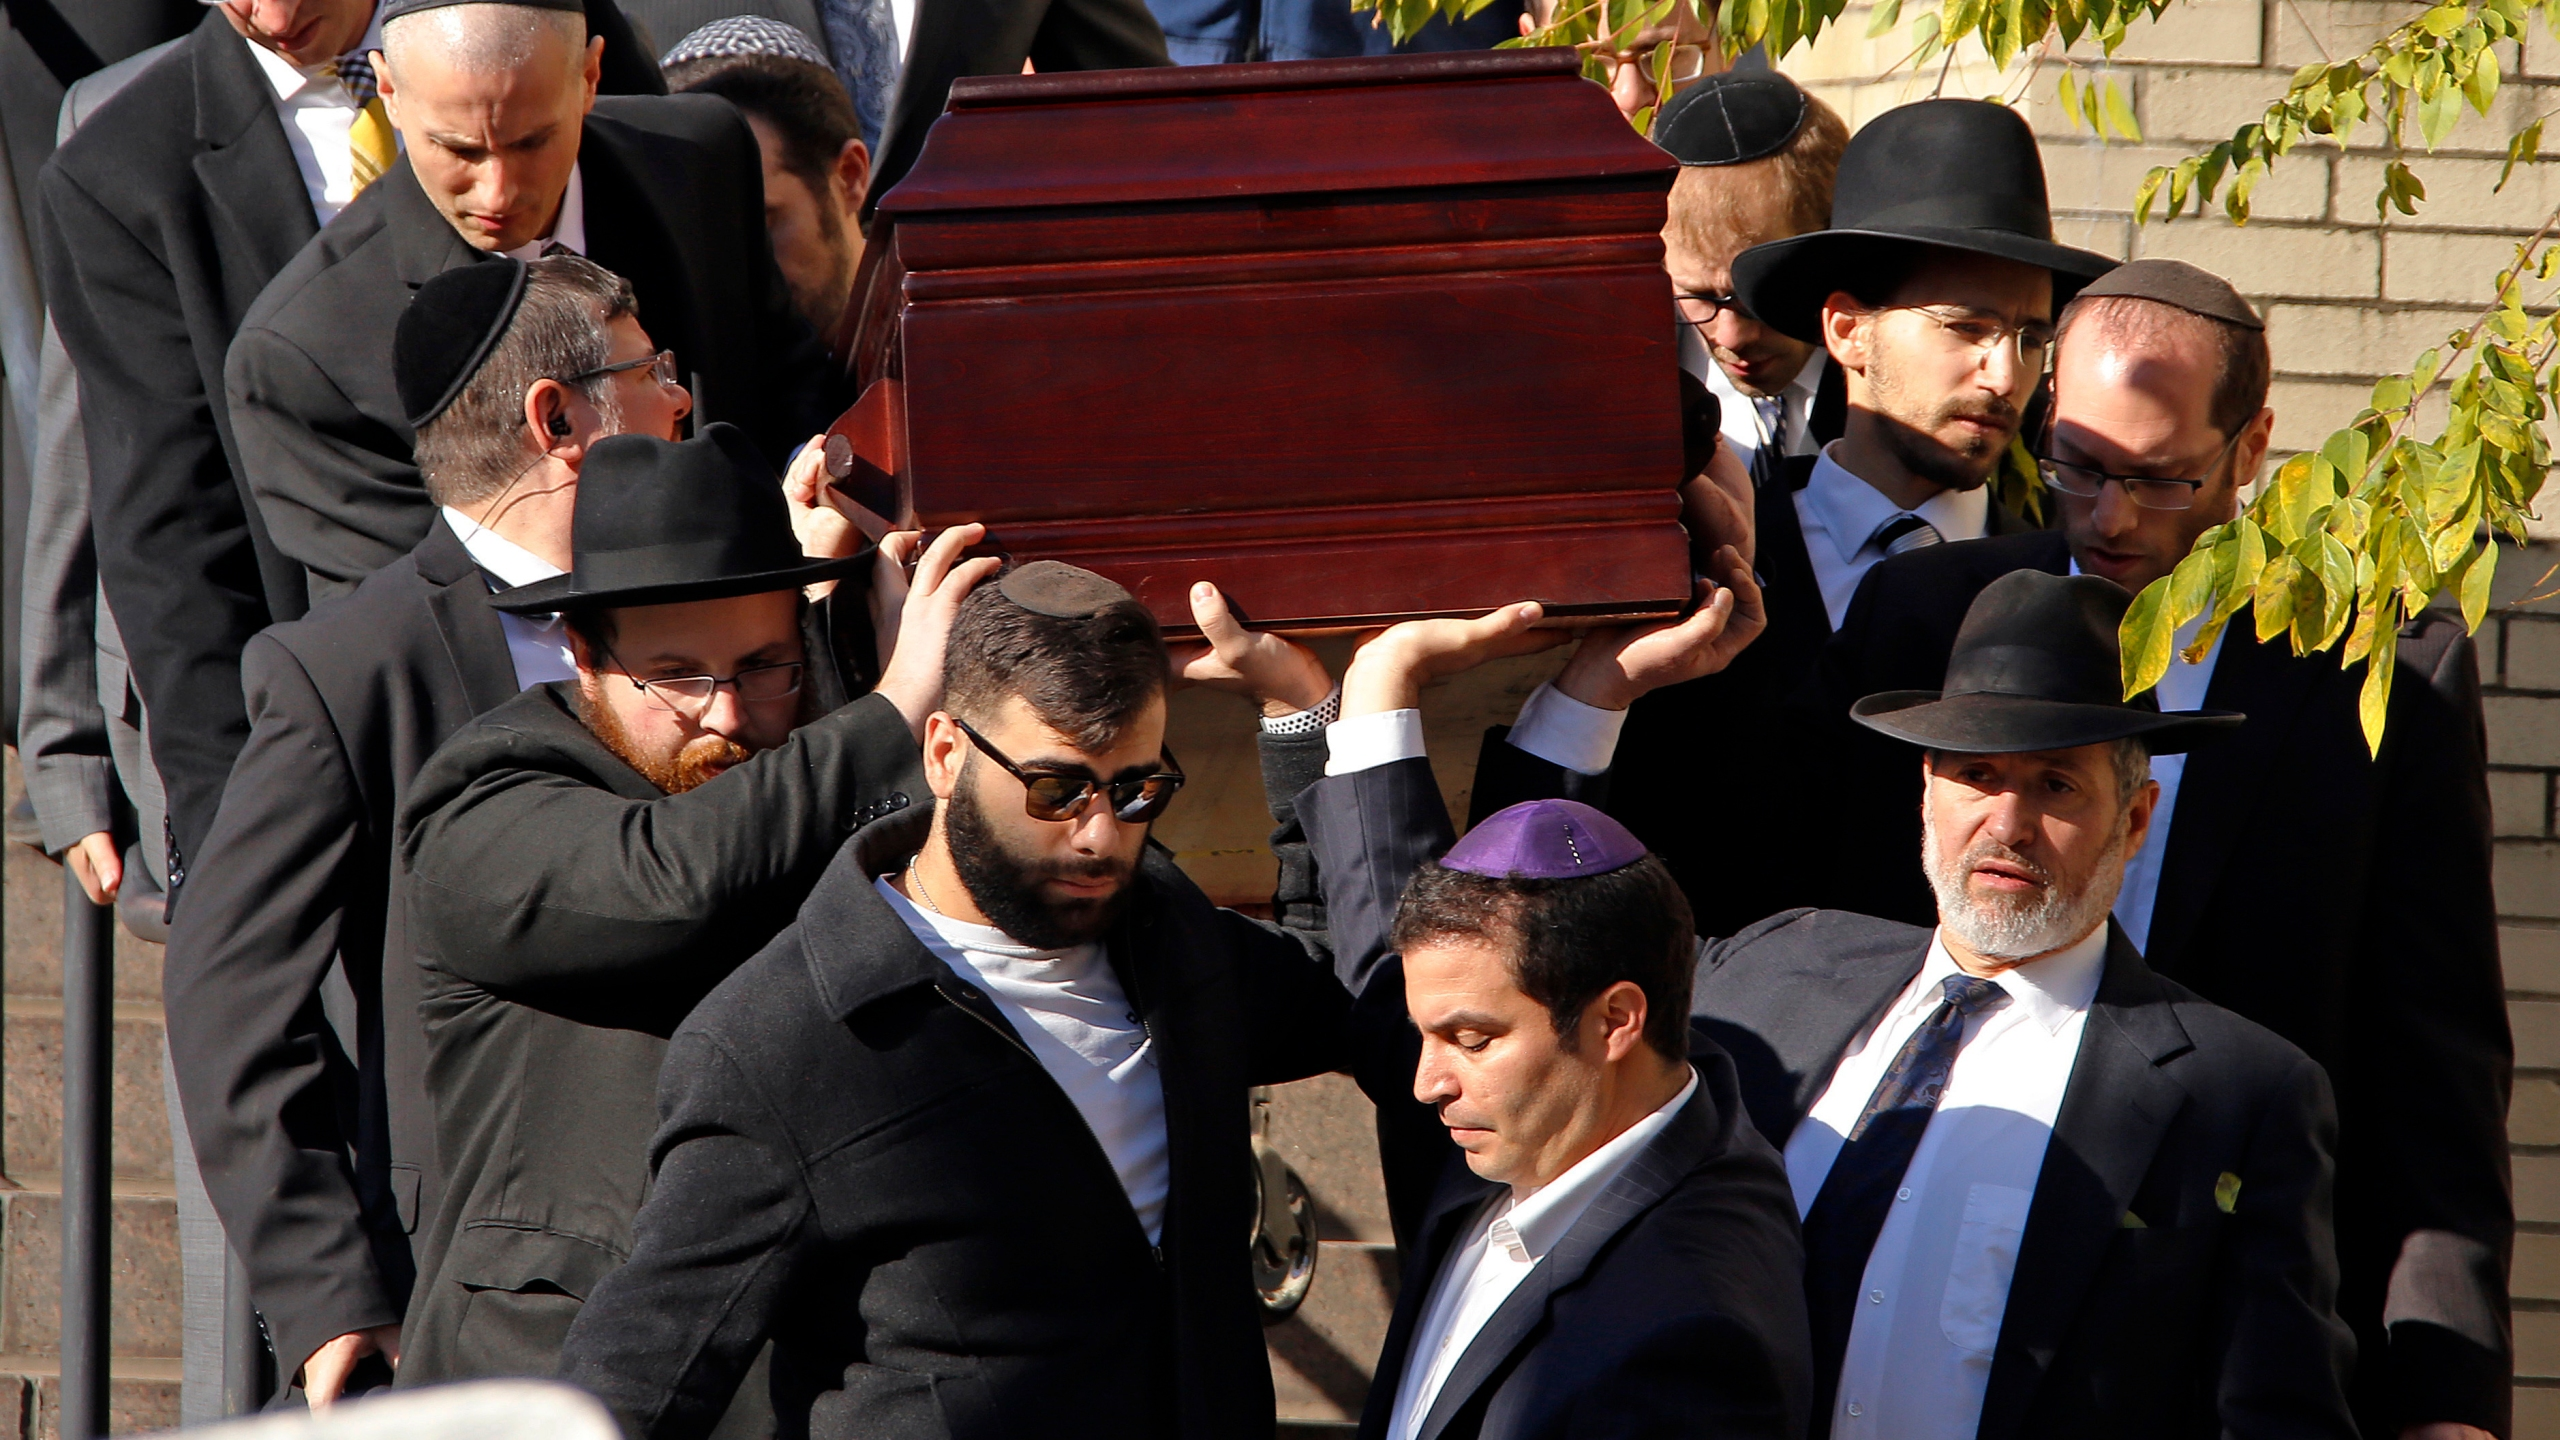 Shooting_Synagogue_Funerals_87748-159532.jpg58597967